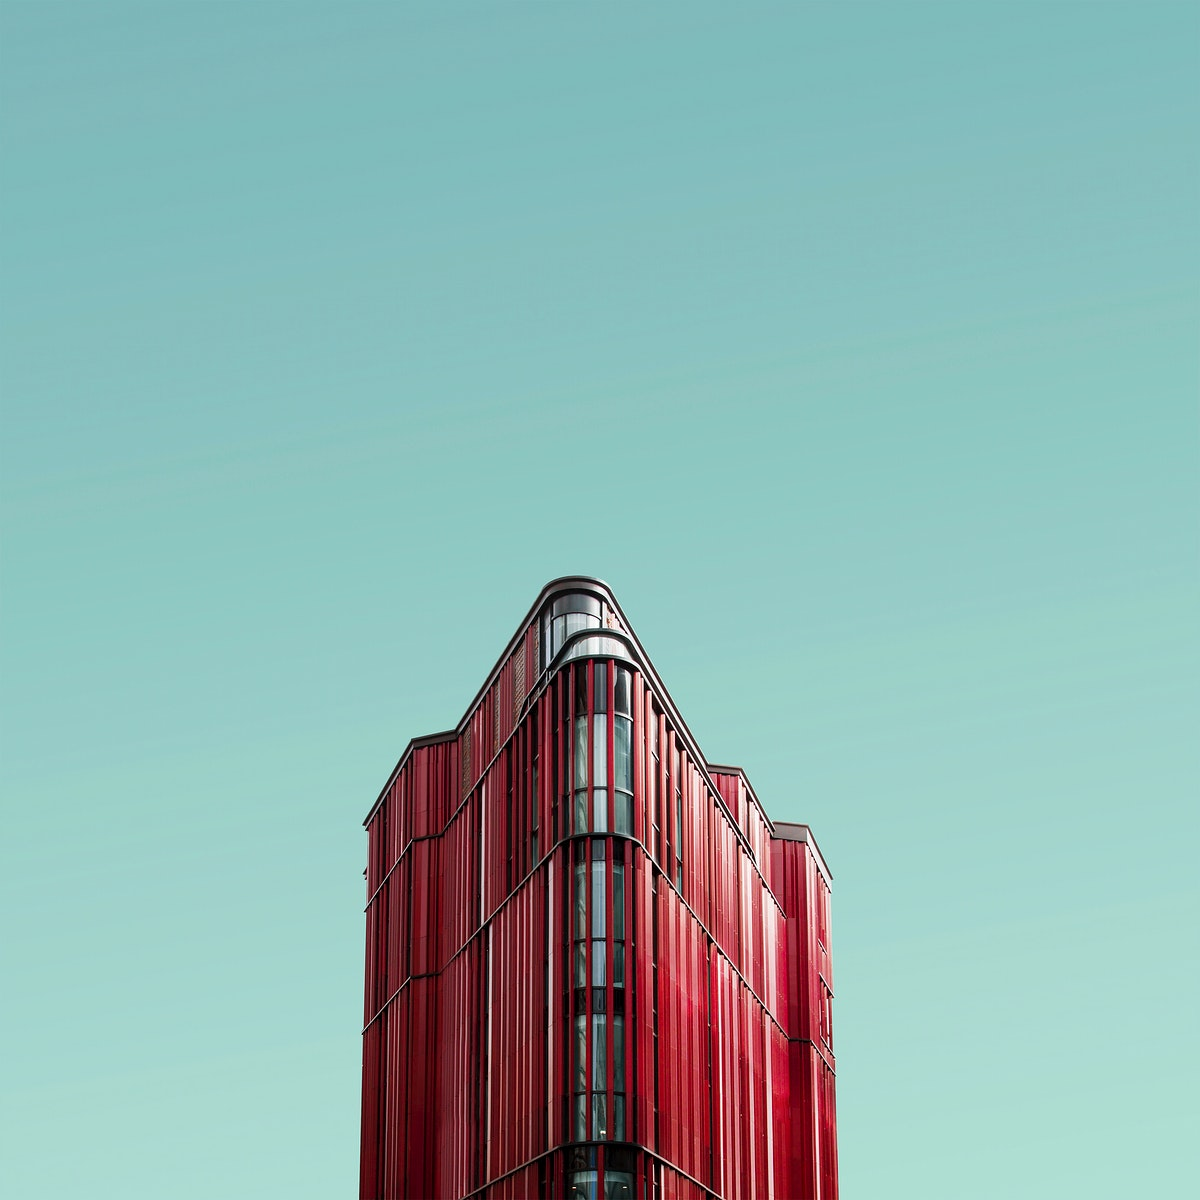 The red monster, modern building at Oxford Street, United Kingdom